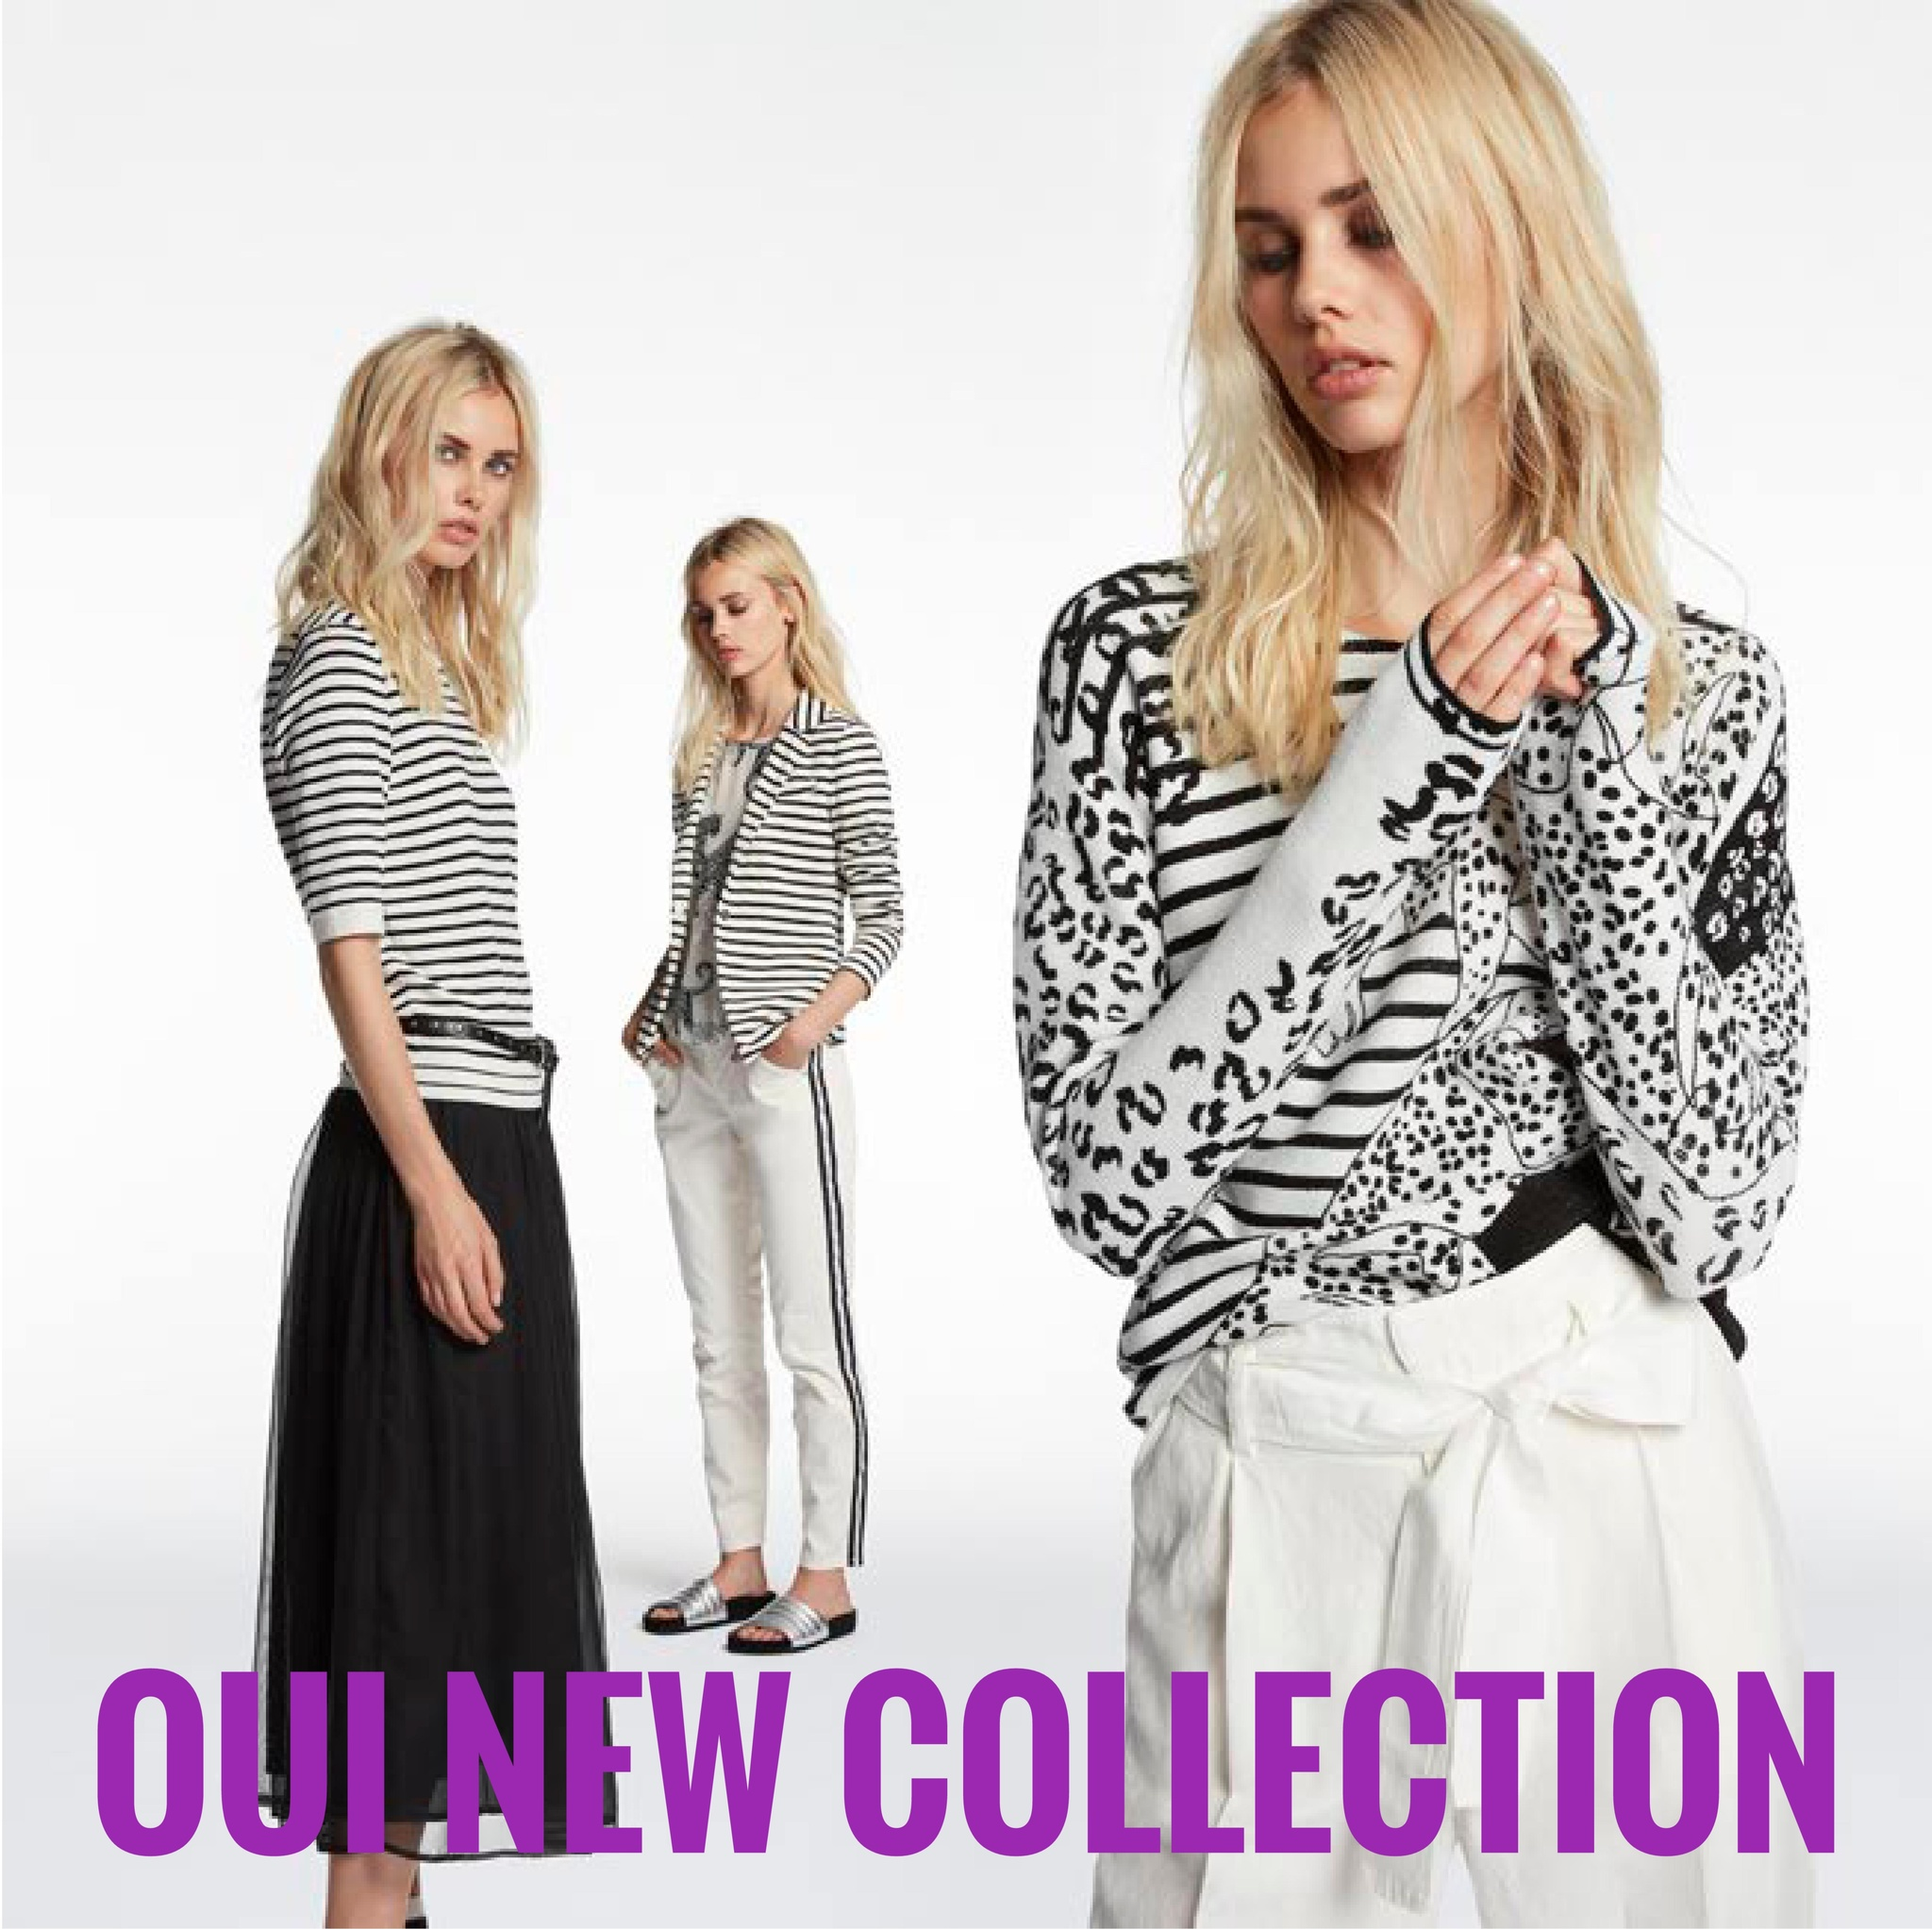 New collection OUI  весна 2018